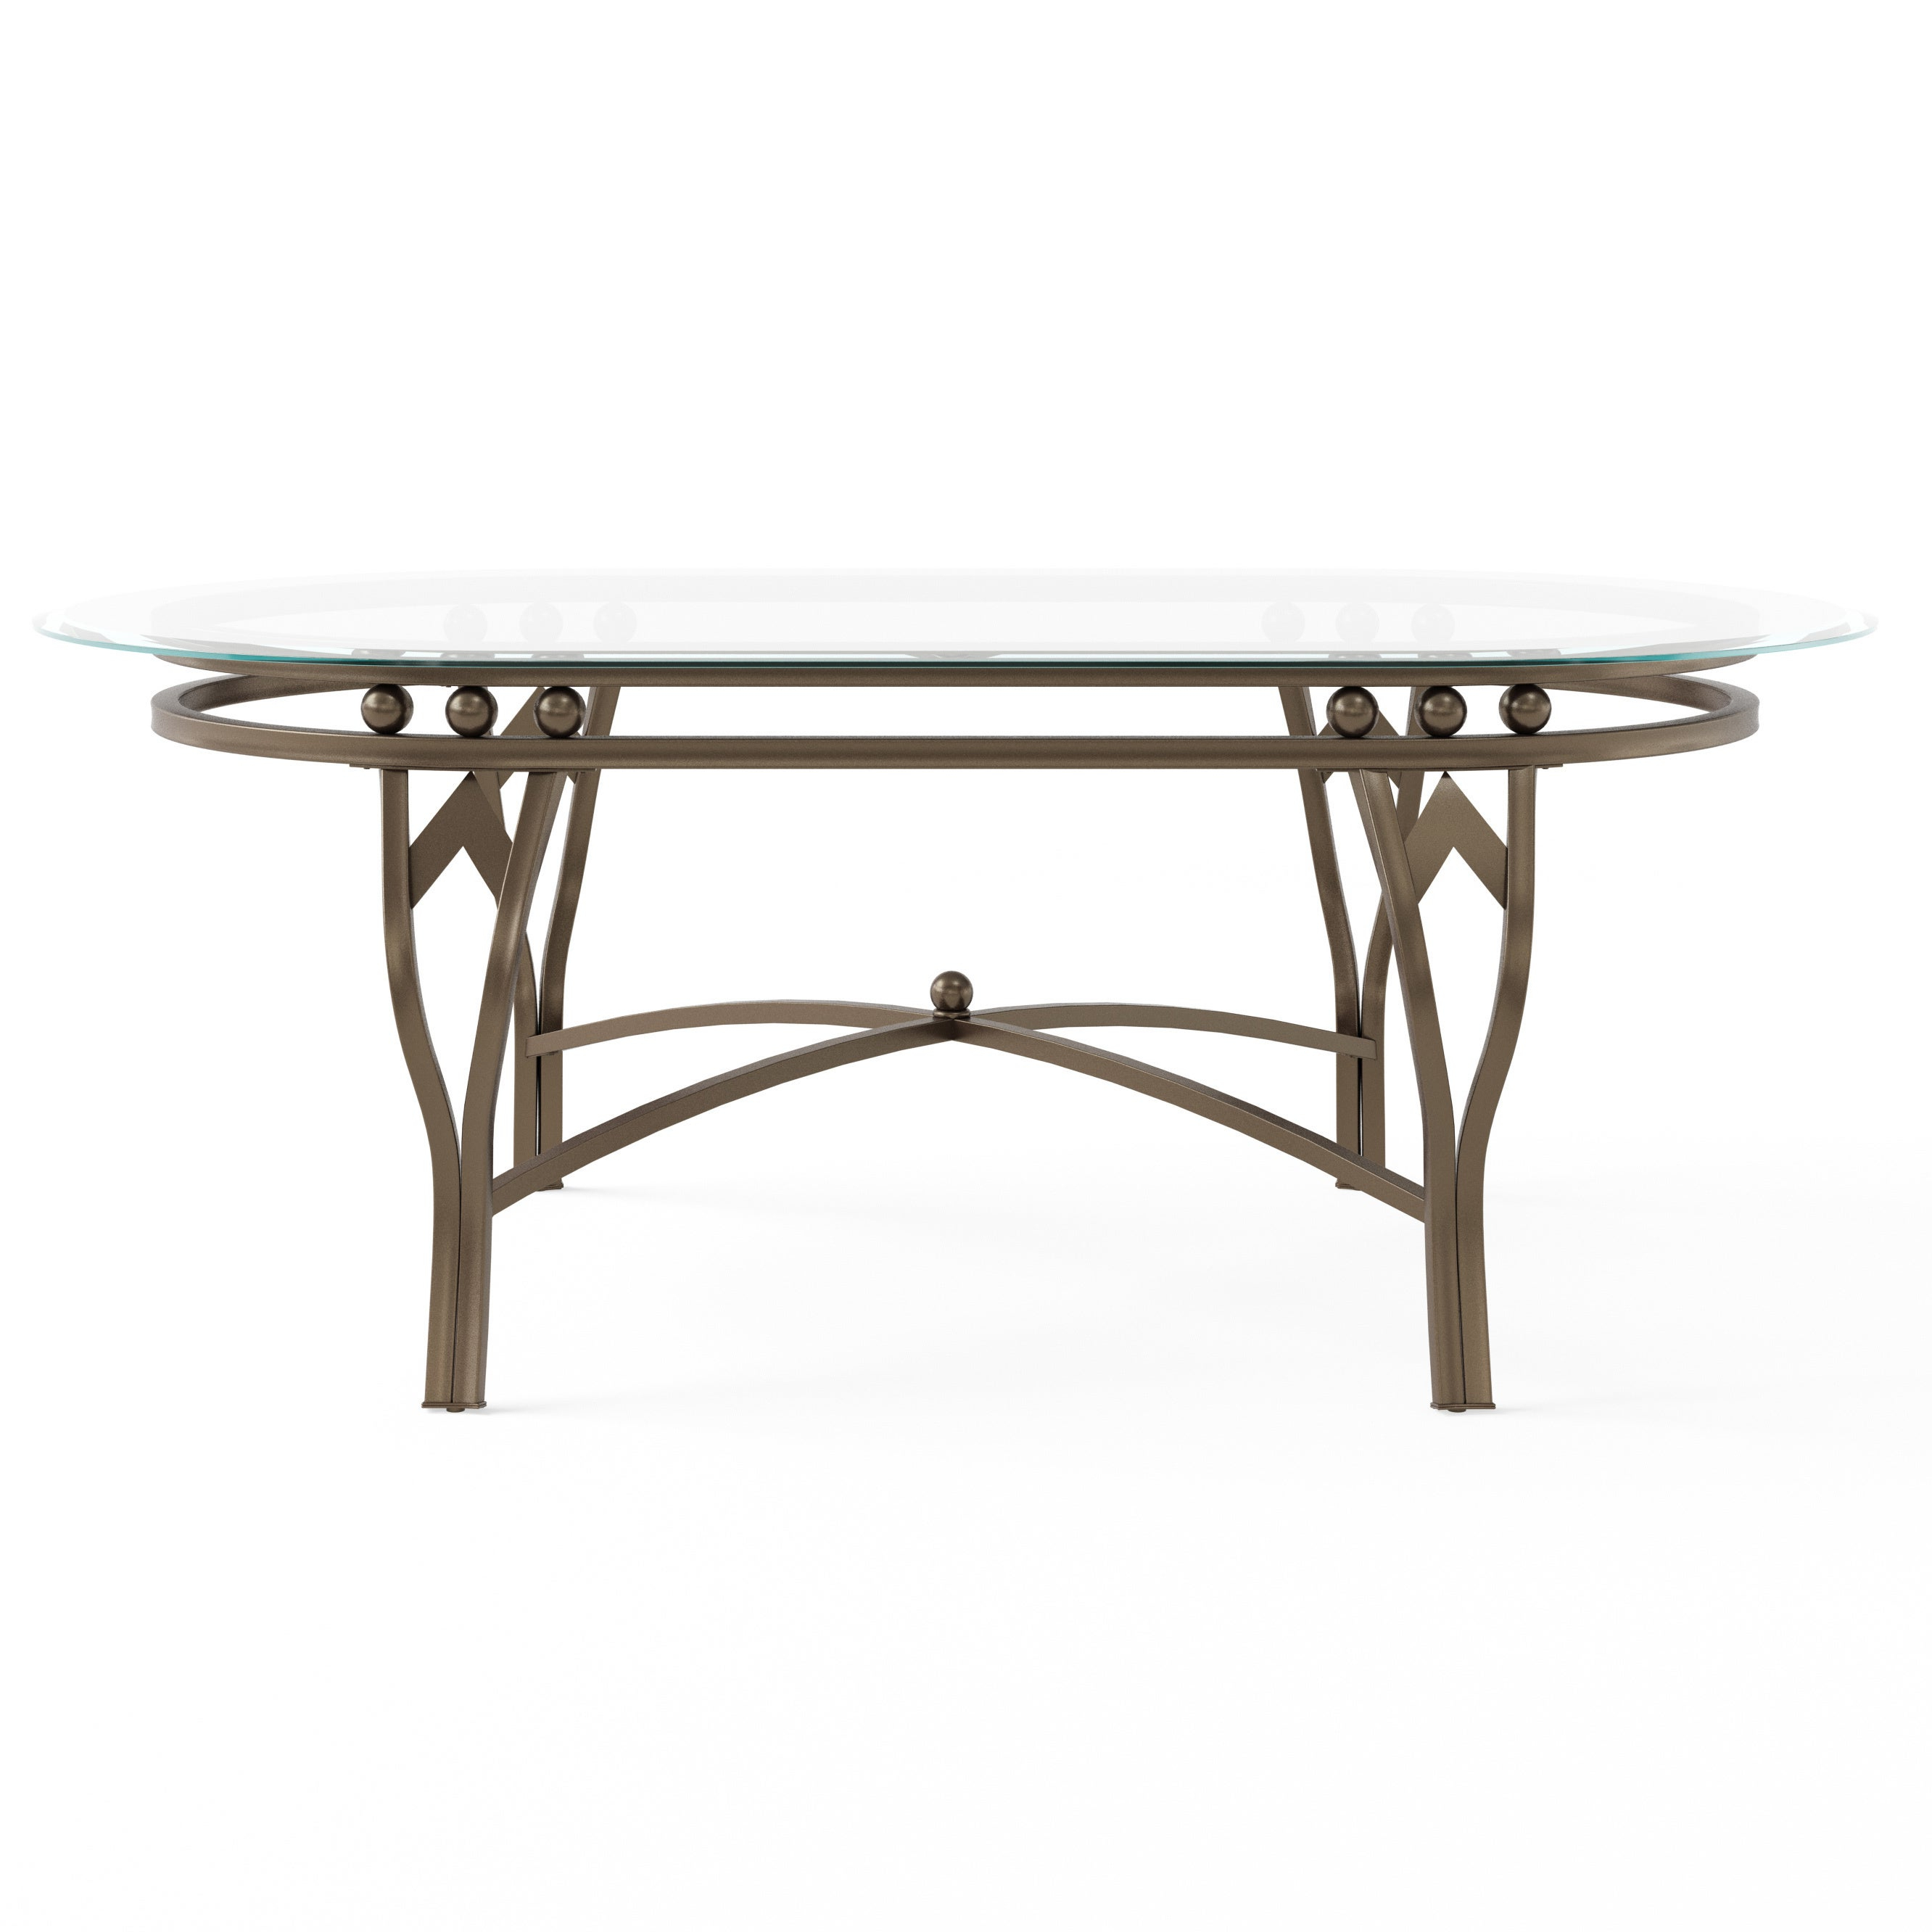 Copper Grove Woodend Glass Top Oval Coffee Table Throughout Preferred Copper Grove Woodend Glass Top Oval Coffee Tables (View 4 of 20)